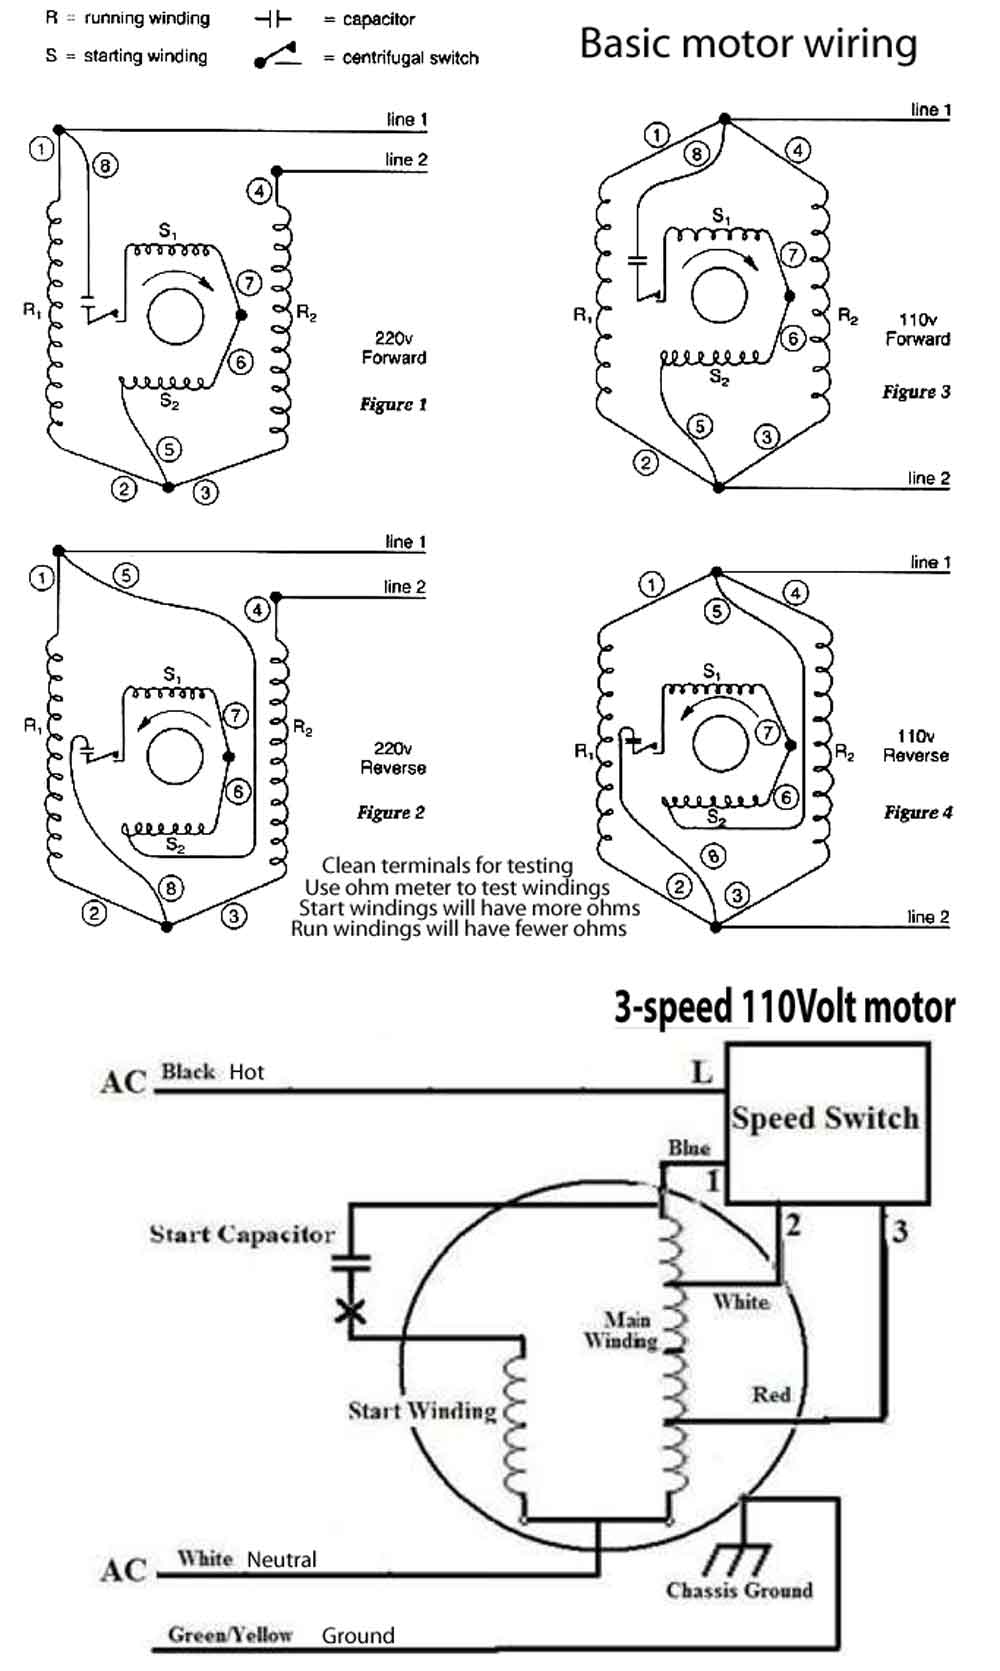 How to wire 3-speed fan switch